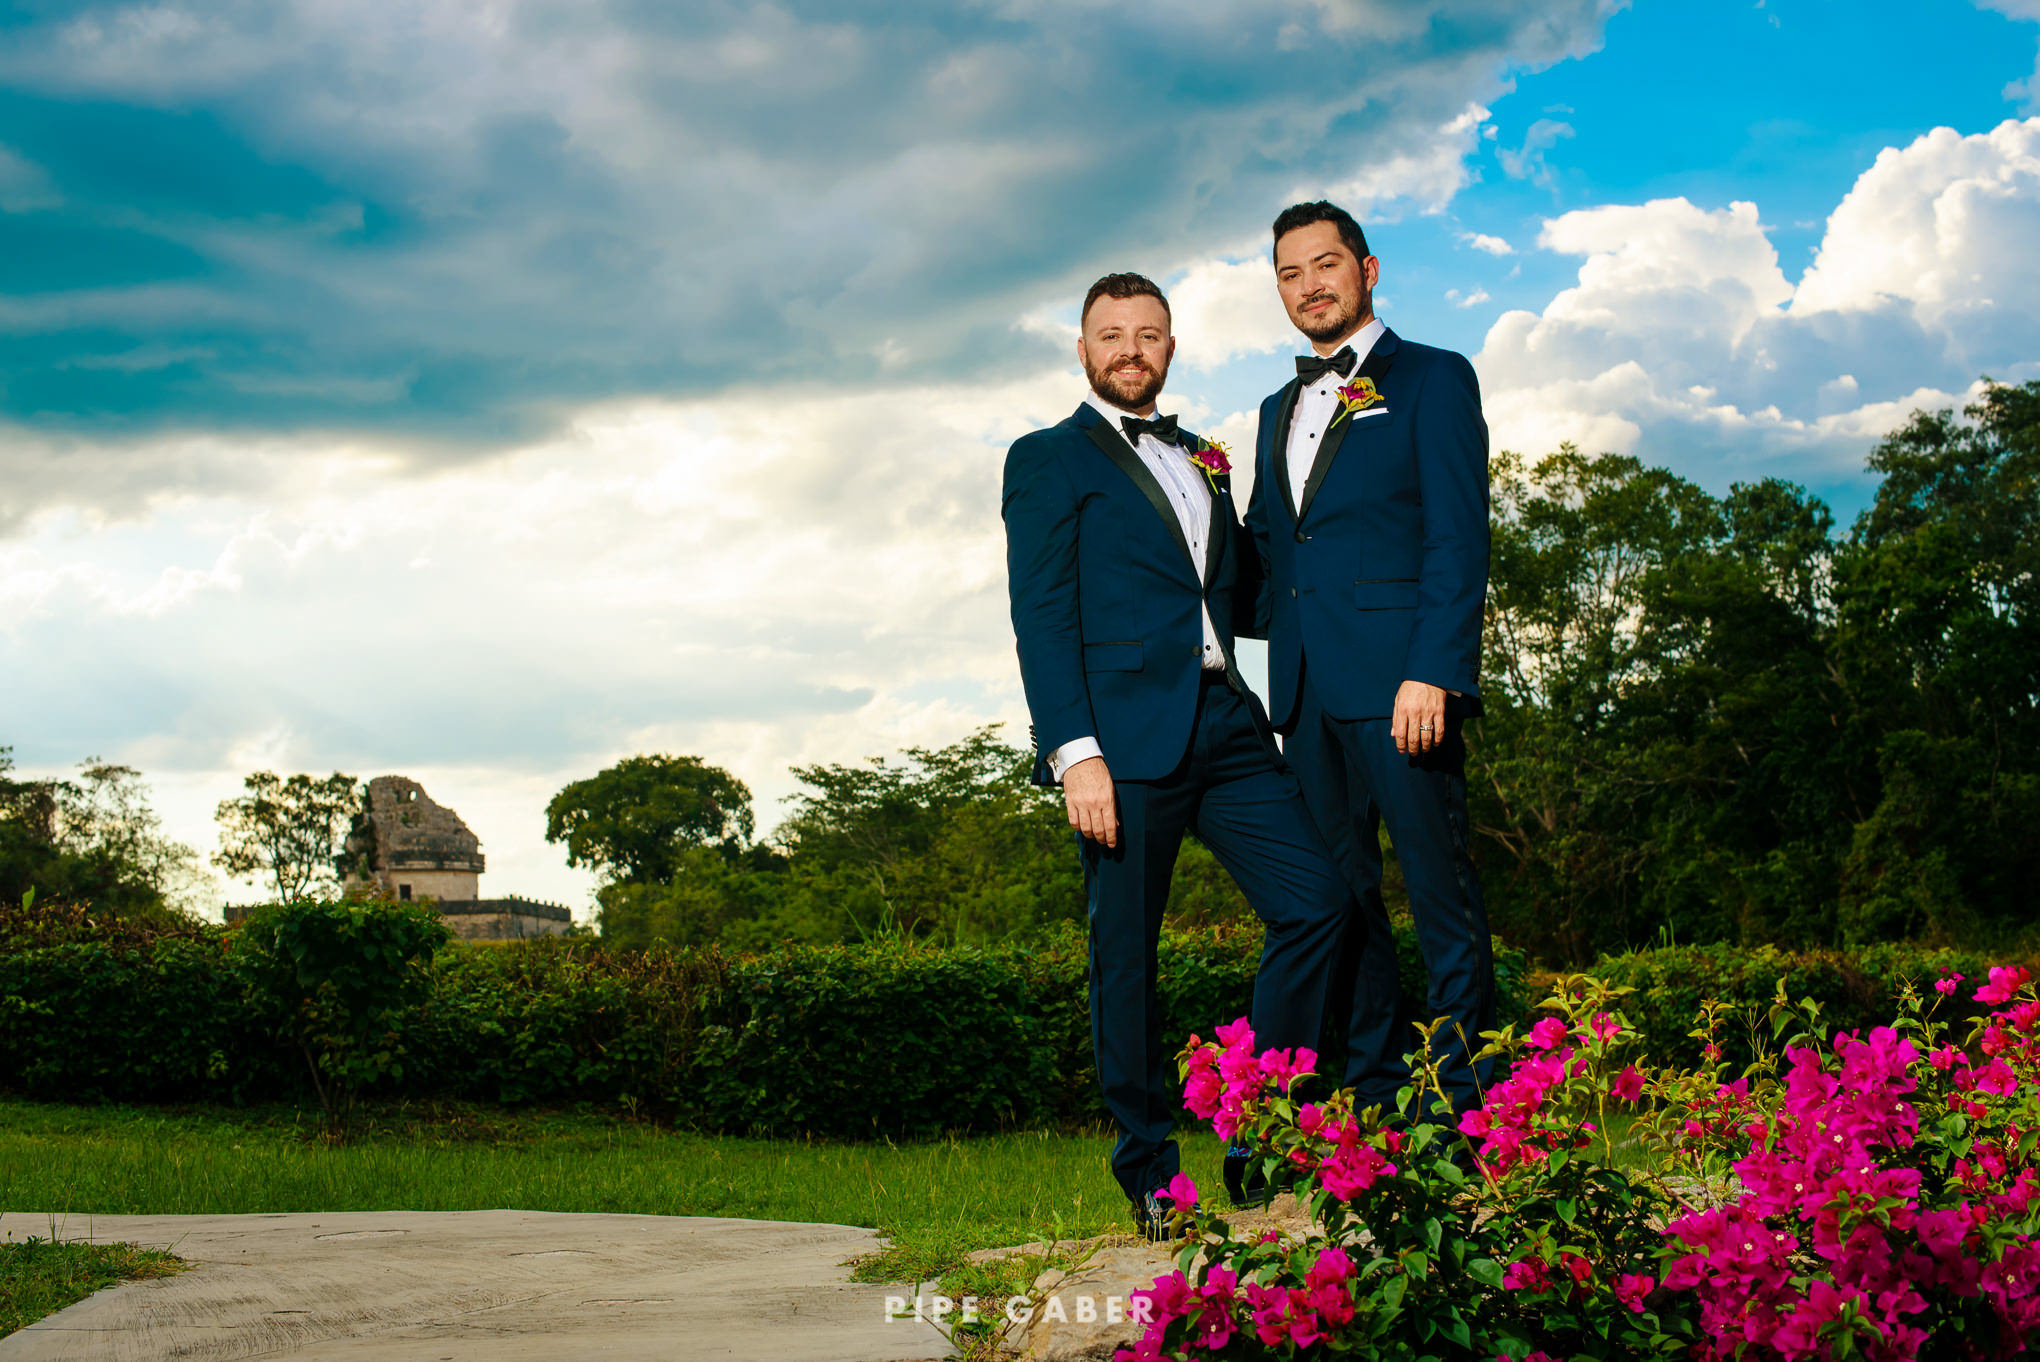 ZONAS_ARQUEOLOGICAS_YUCATAN_WEDDINGS_BY_PIPE_GABER01_WEB.jpg